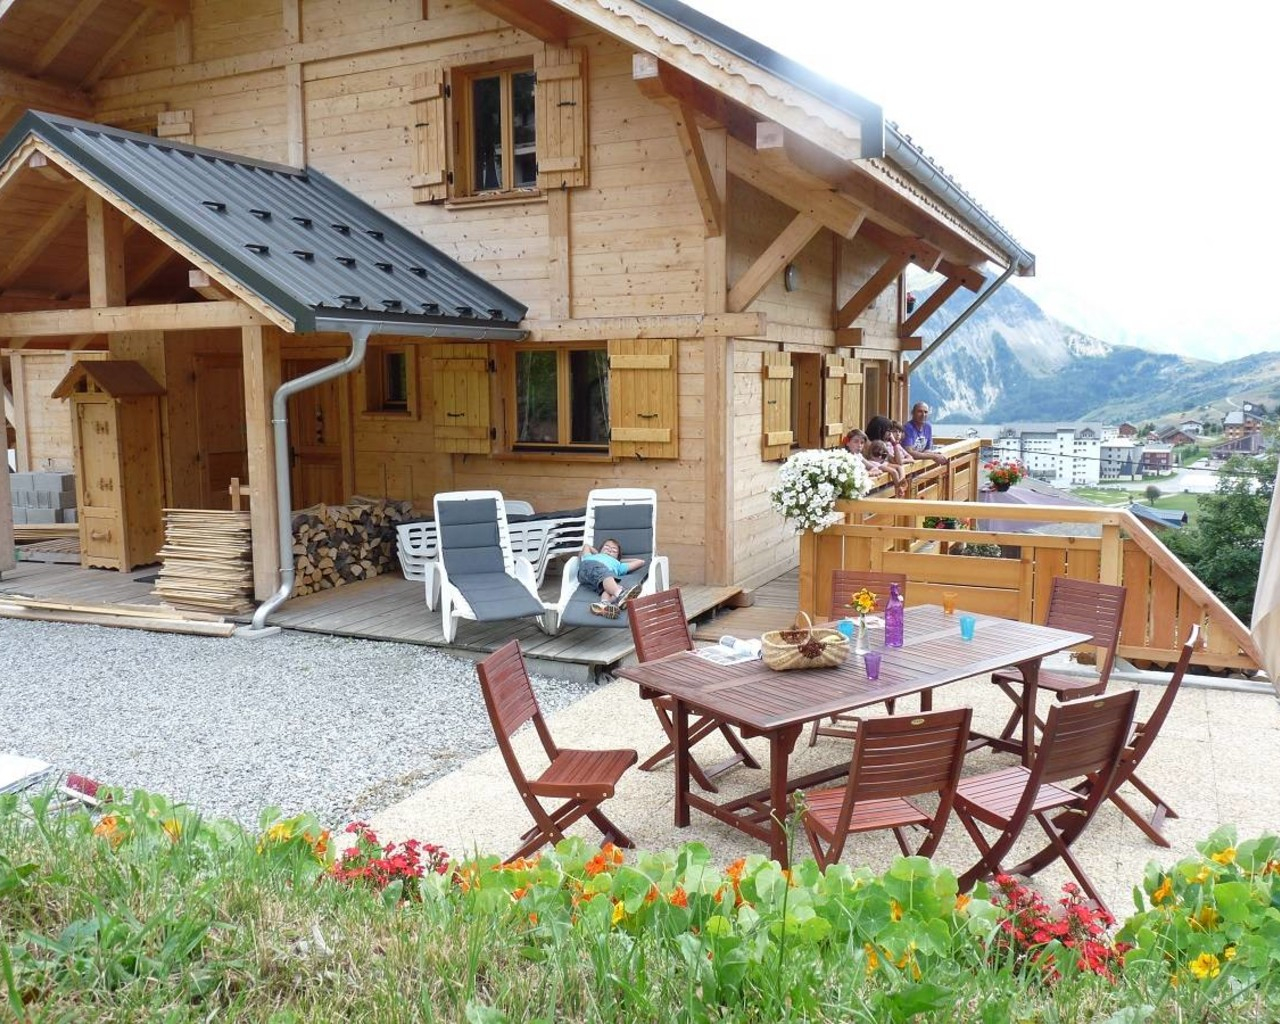 """Chalet """"le Jardin D'hiver"""", Lodgings And Furnished Rentals ... intérieur Chalet Le Jardin D Hiver La Toussuire"""